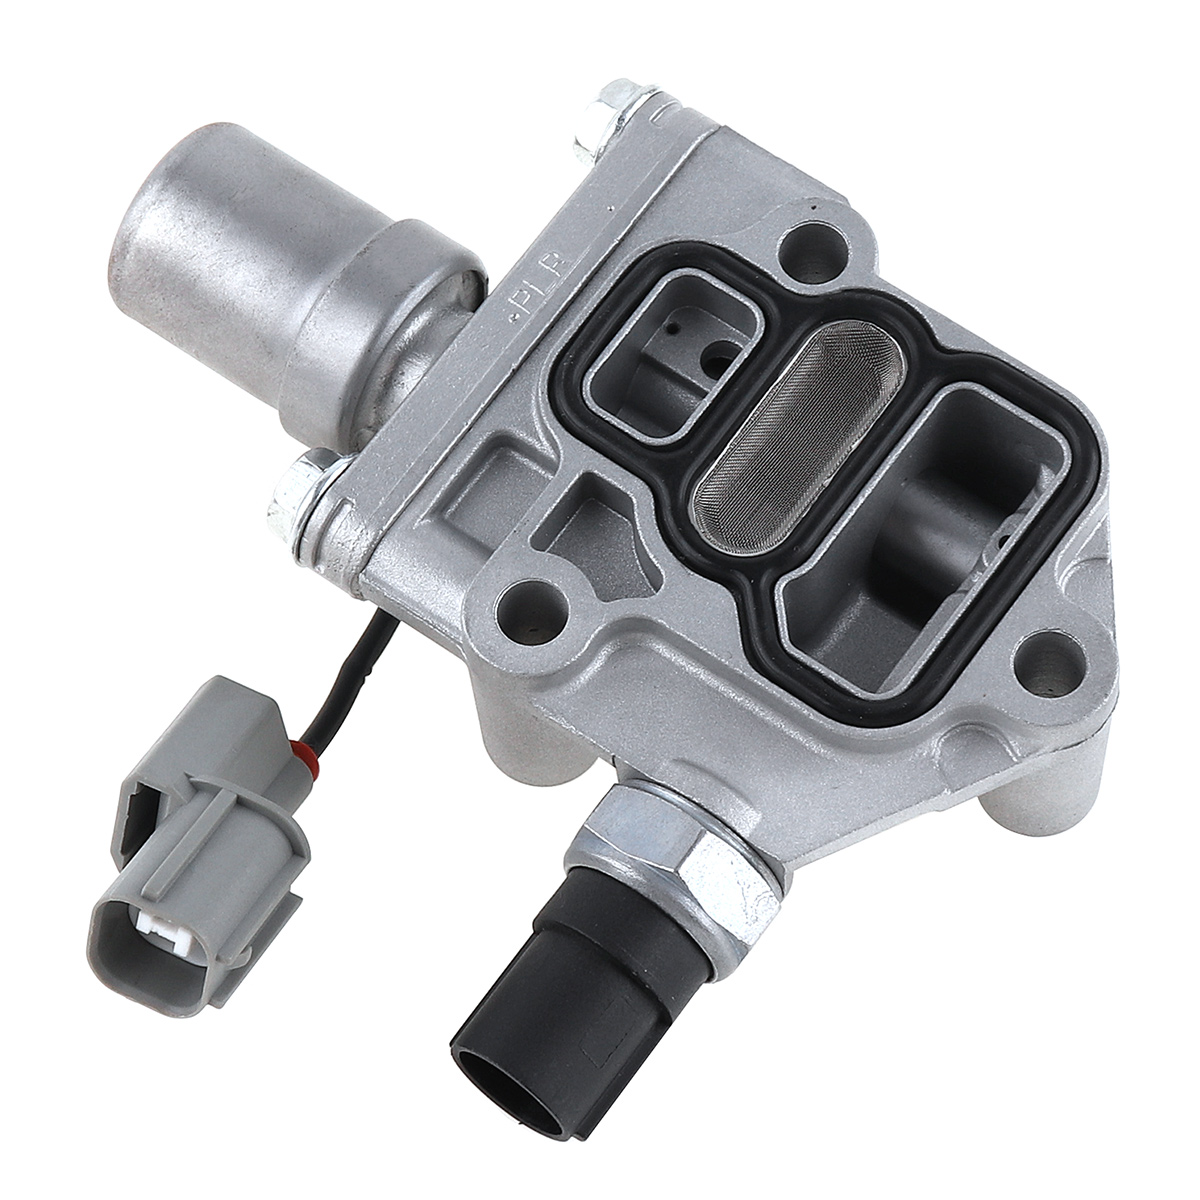 15810 PLR A01 Solenoid Spool Valve Practical Automotive Tools for Honda Civic VTEC 1 7 L 2001 2005 in Air Intakes from Automobiles Motorcycles